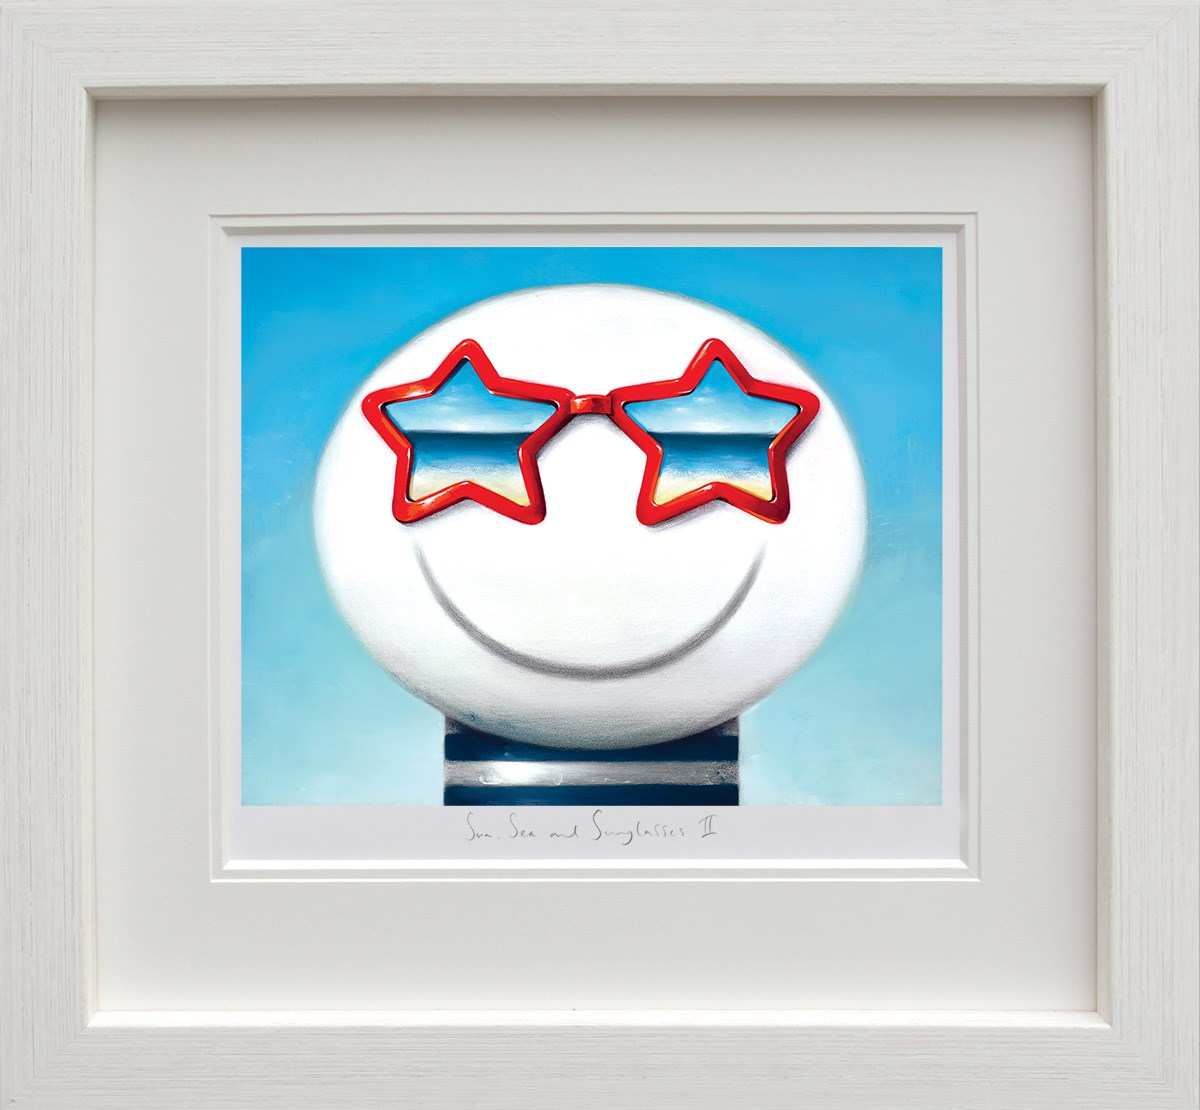 Sun Sea And Sunglasses II by Doug Hyde